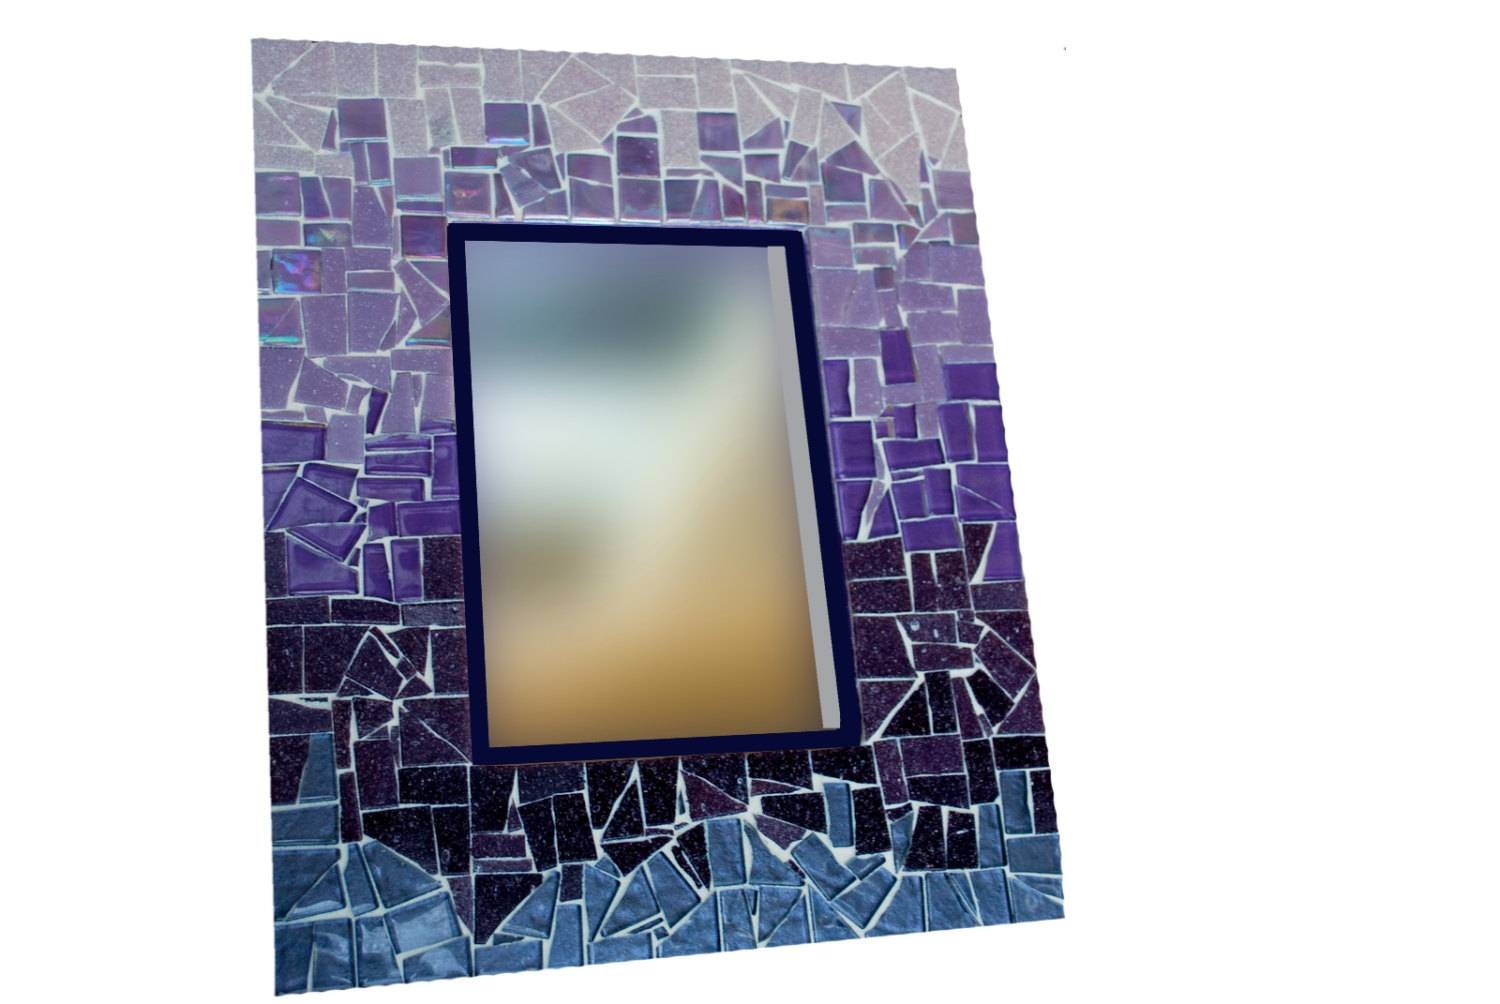 Purple Ombre Mosaic Mirror Large Wall Mirror Colorful Home Inside Large Mosaic Mirrors (View 13 of 15)